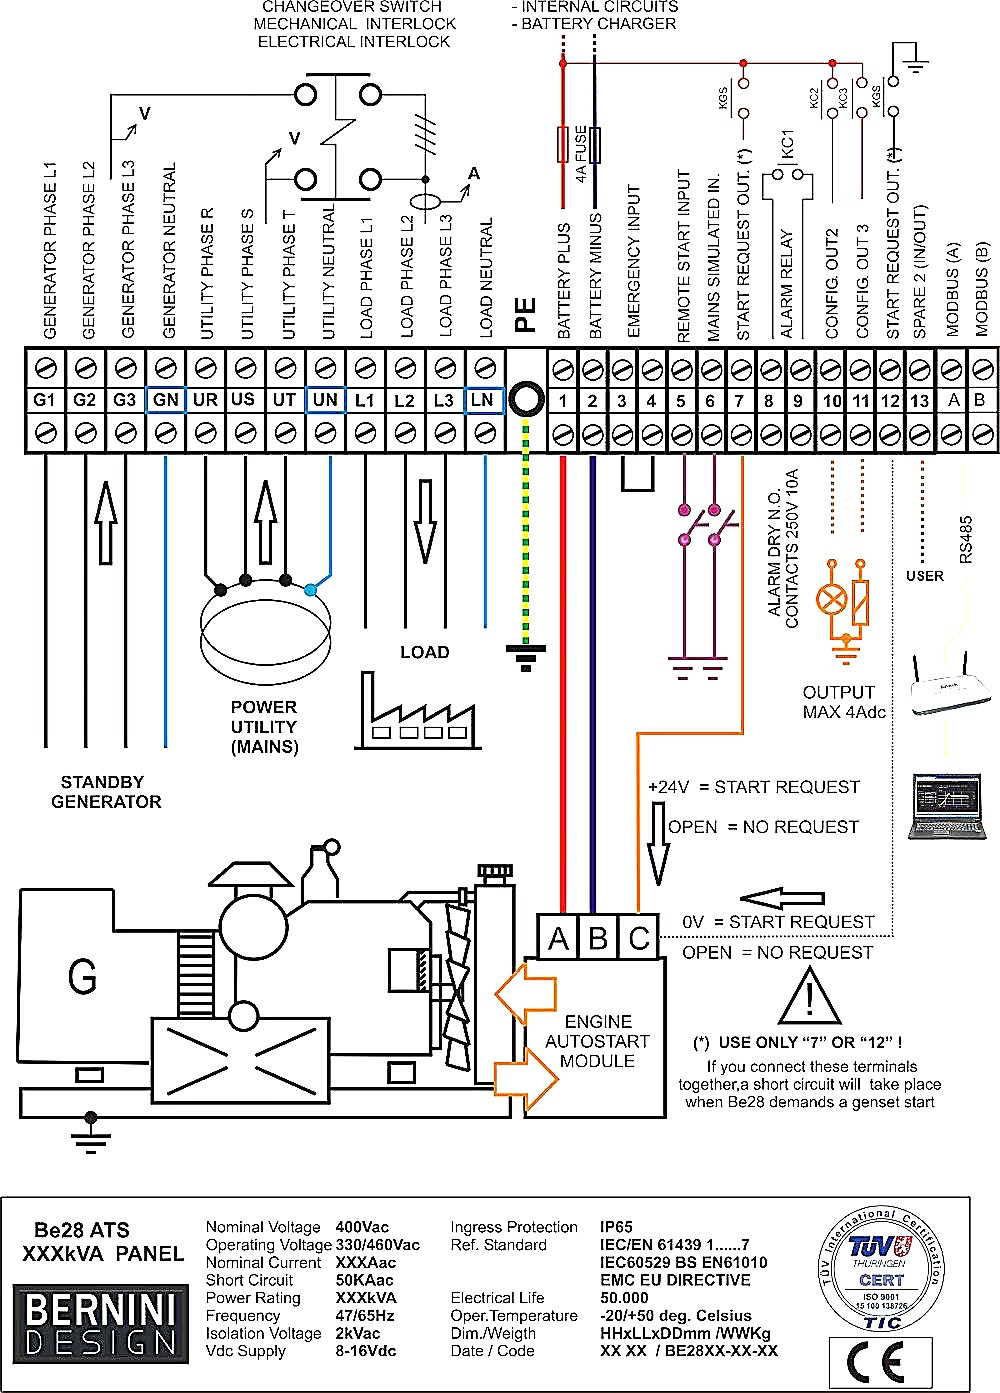 generac 6333 wiring diagram Download-generac automatic transfer switch  wiring diagram fitfathers me in rh. DOWNLOAD. Wiring Diagram ...